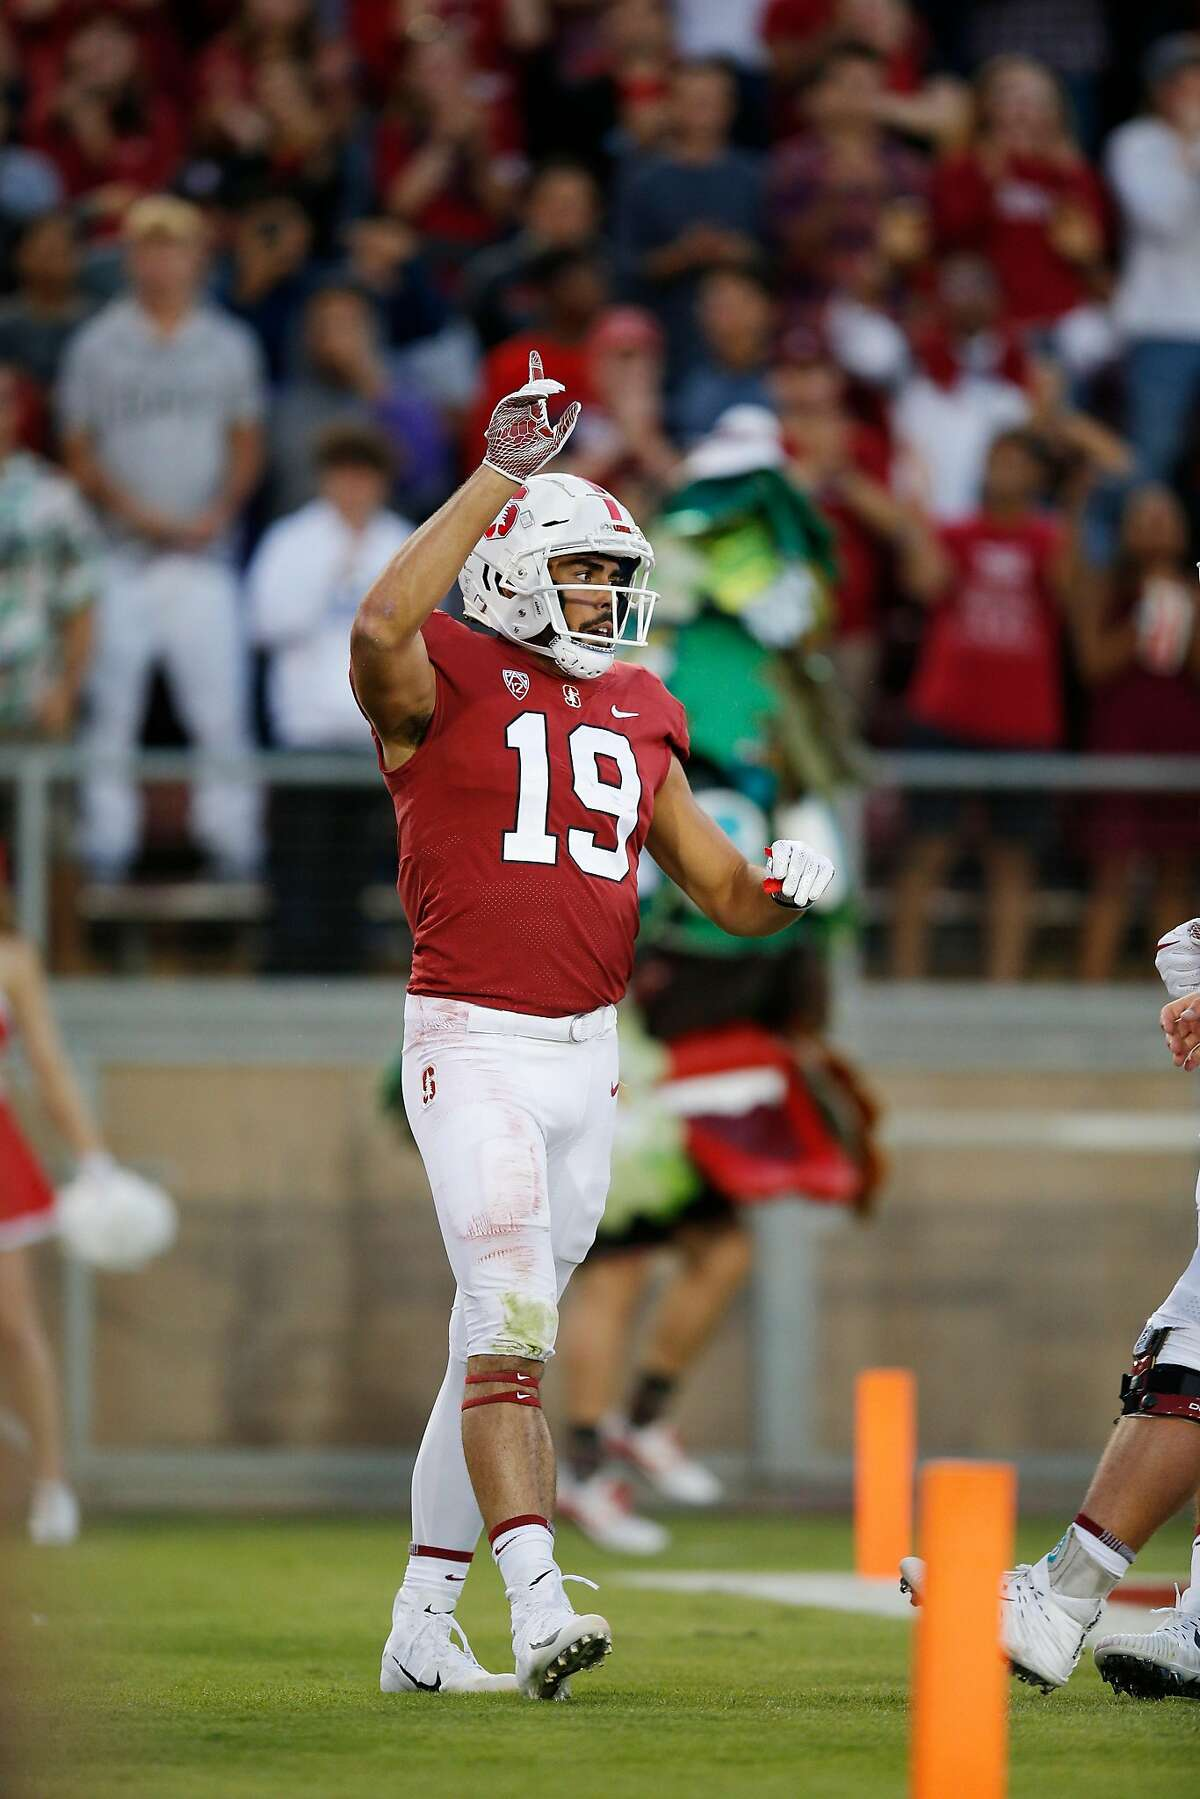 Stanford Cardinal wide receiver JJ Arcega-Whiteside (19) reacts after his touchdown catch against San Diego State Aztecs cornerback Ron Smith (17) during an NCAA football game at Stanford Stadium, Friday, Aug. 31, 2018, in Stanford, Calif.